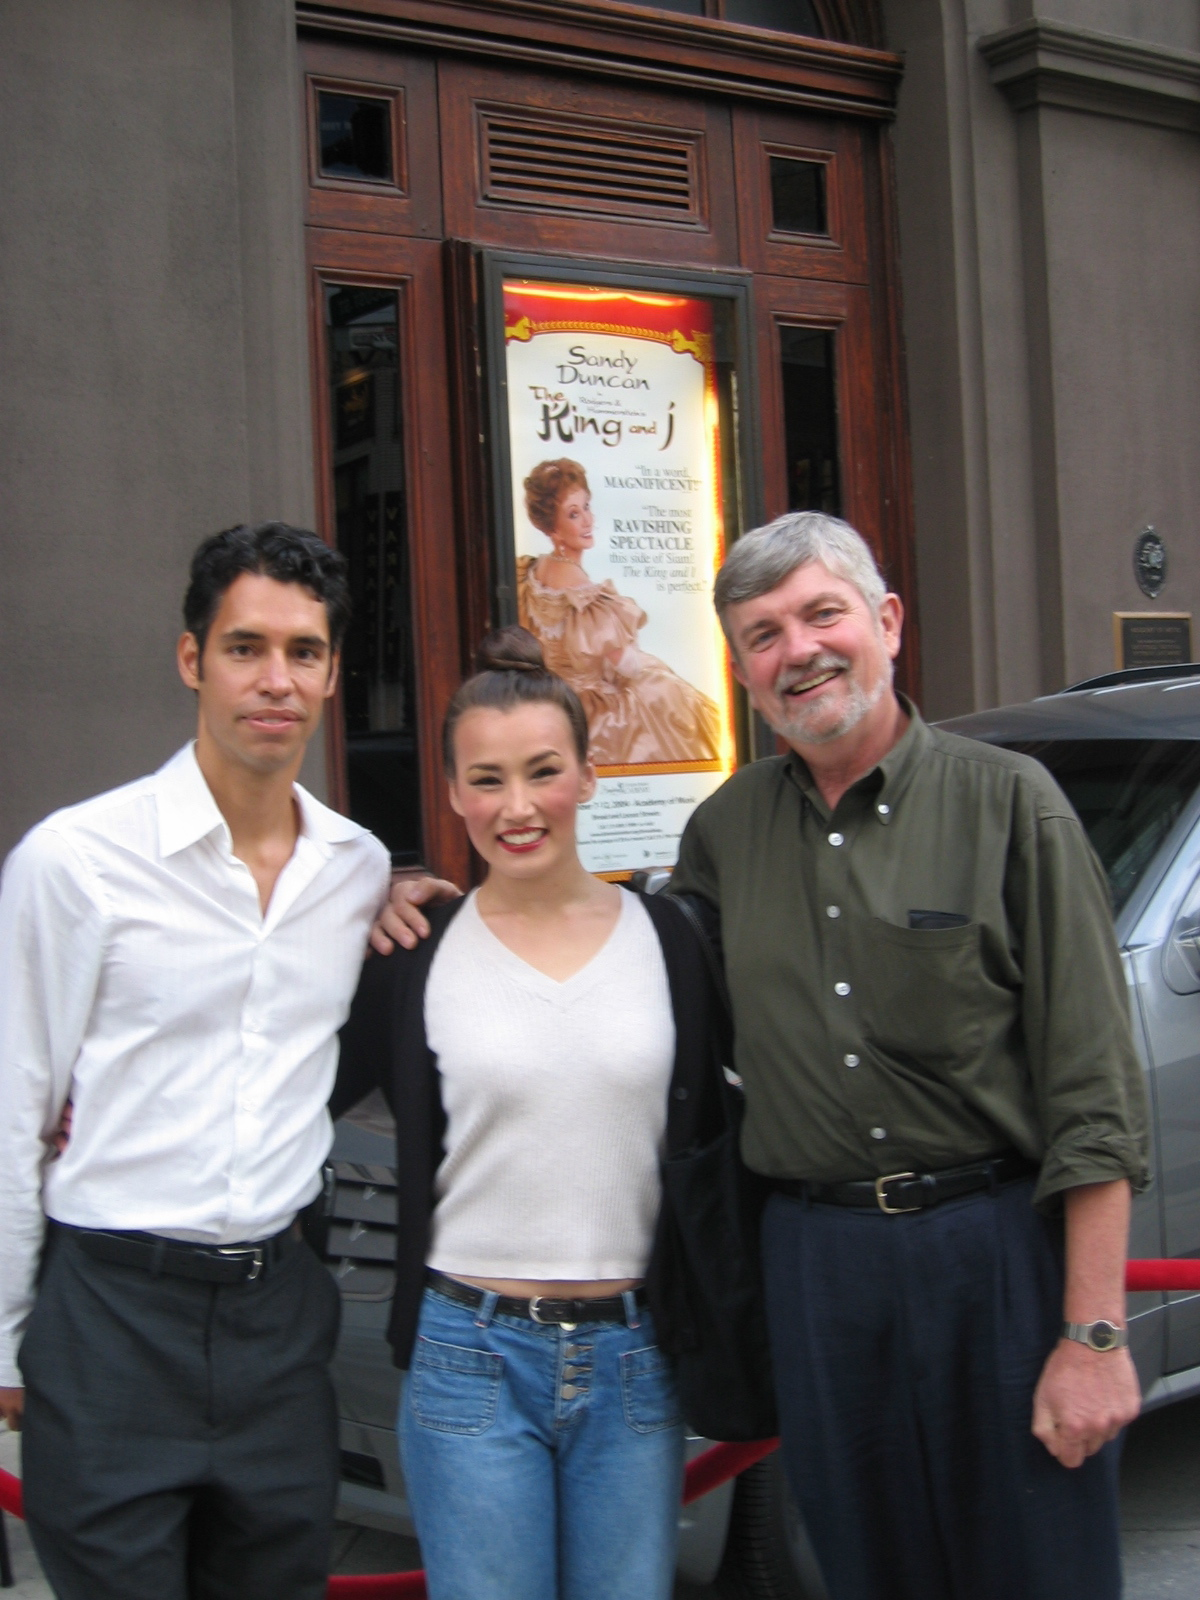 My brother Marcos and our good friend Don Padgett came to see the show in Philly